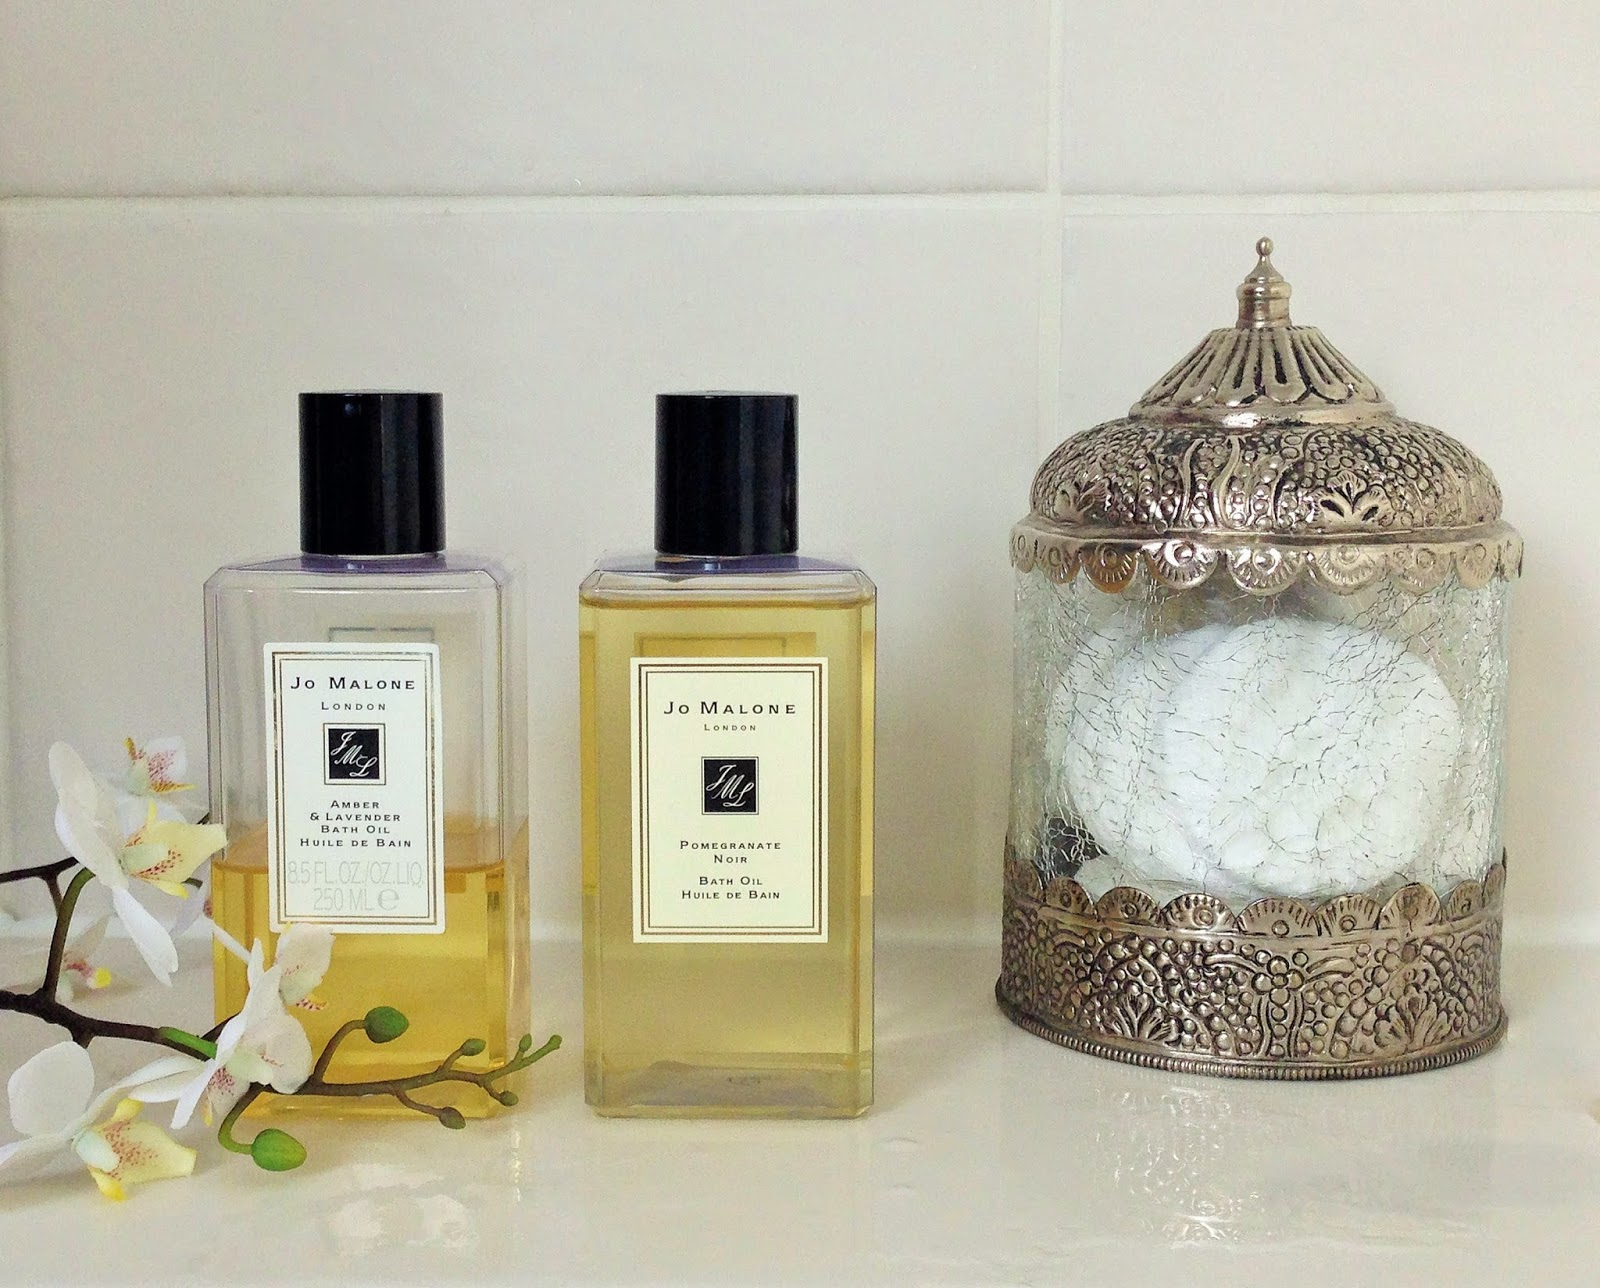 Jo Malone bath oils in Amber and Lavender and Pomegranate Noir